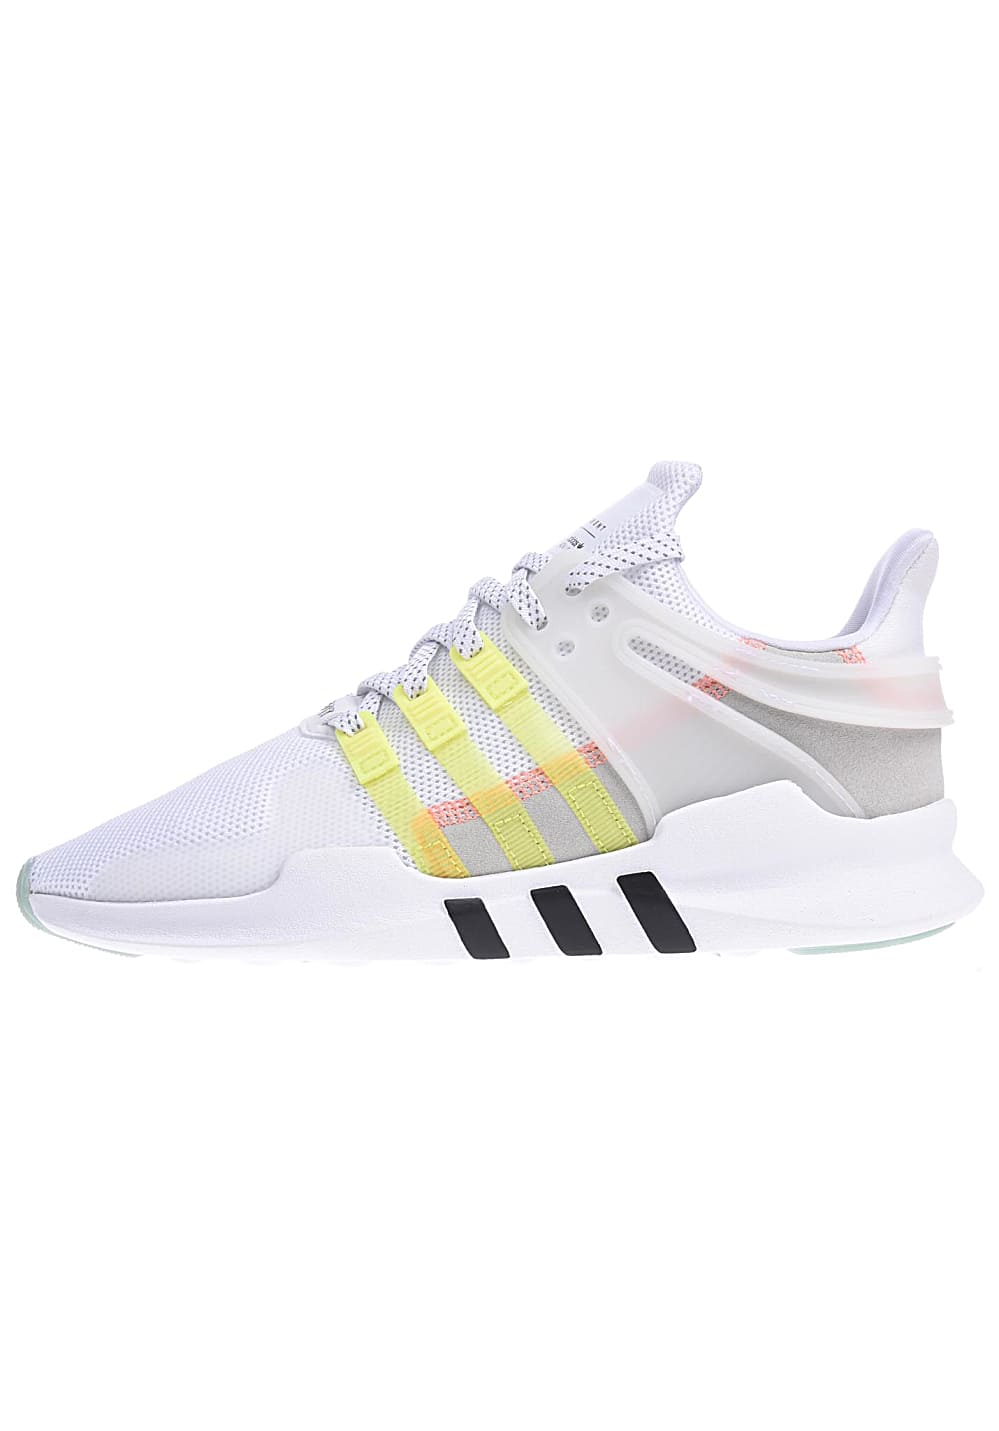 adidas originals Damen Sneaker Eqt Support Adv in grau